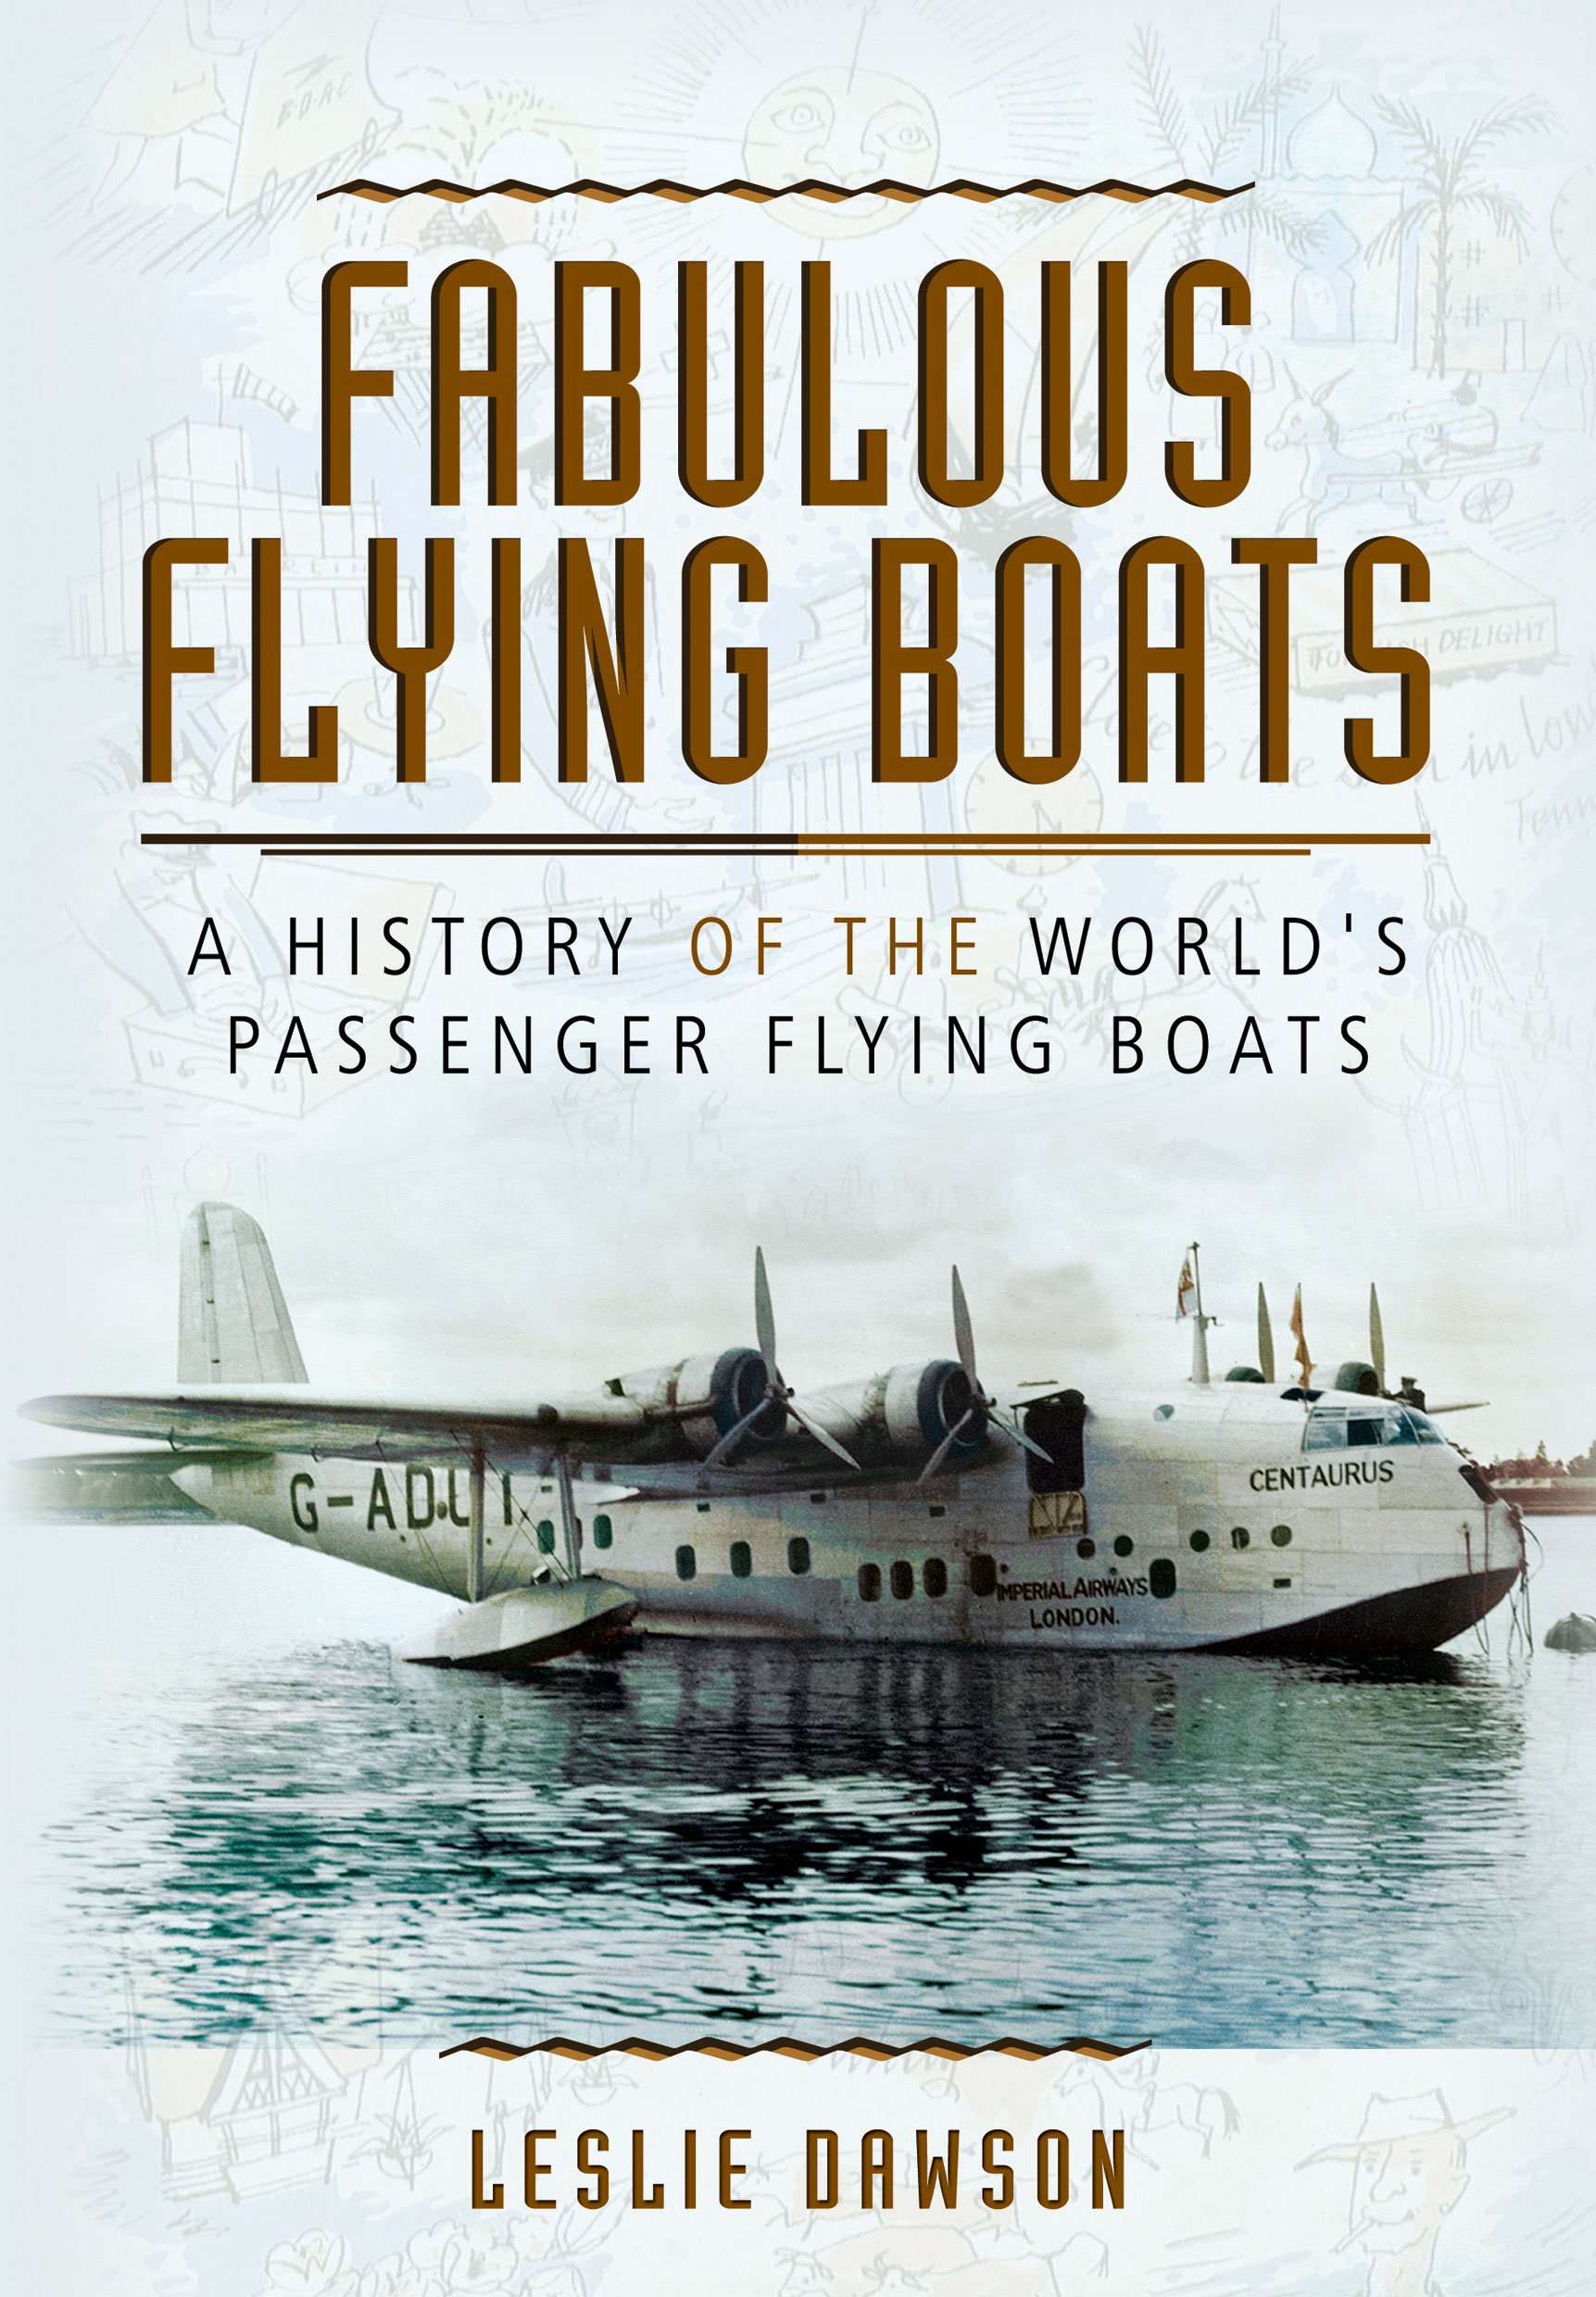 Download Fabulous Flying Boats: A History of the World's Passenger Flying Boats pdf